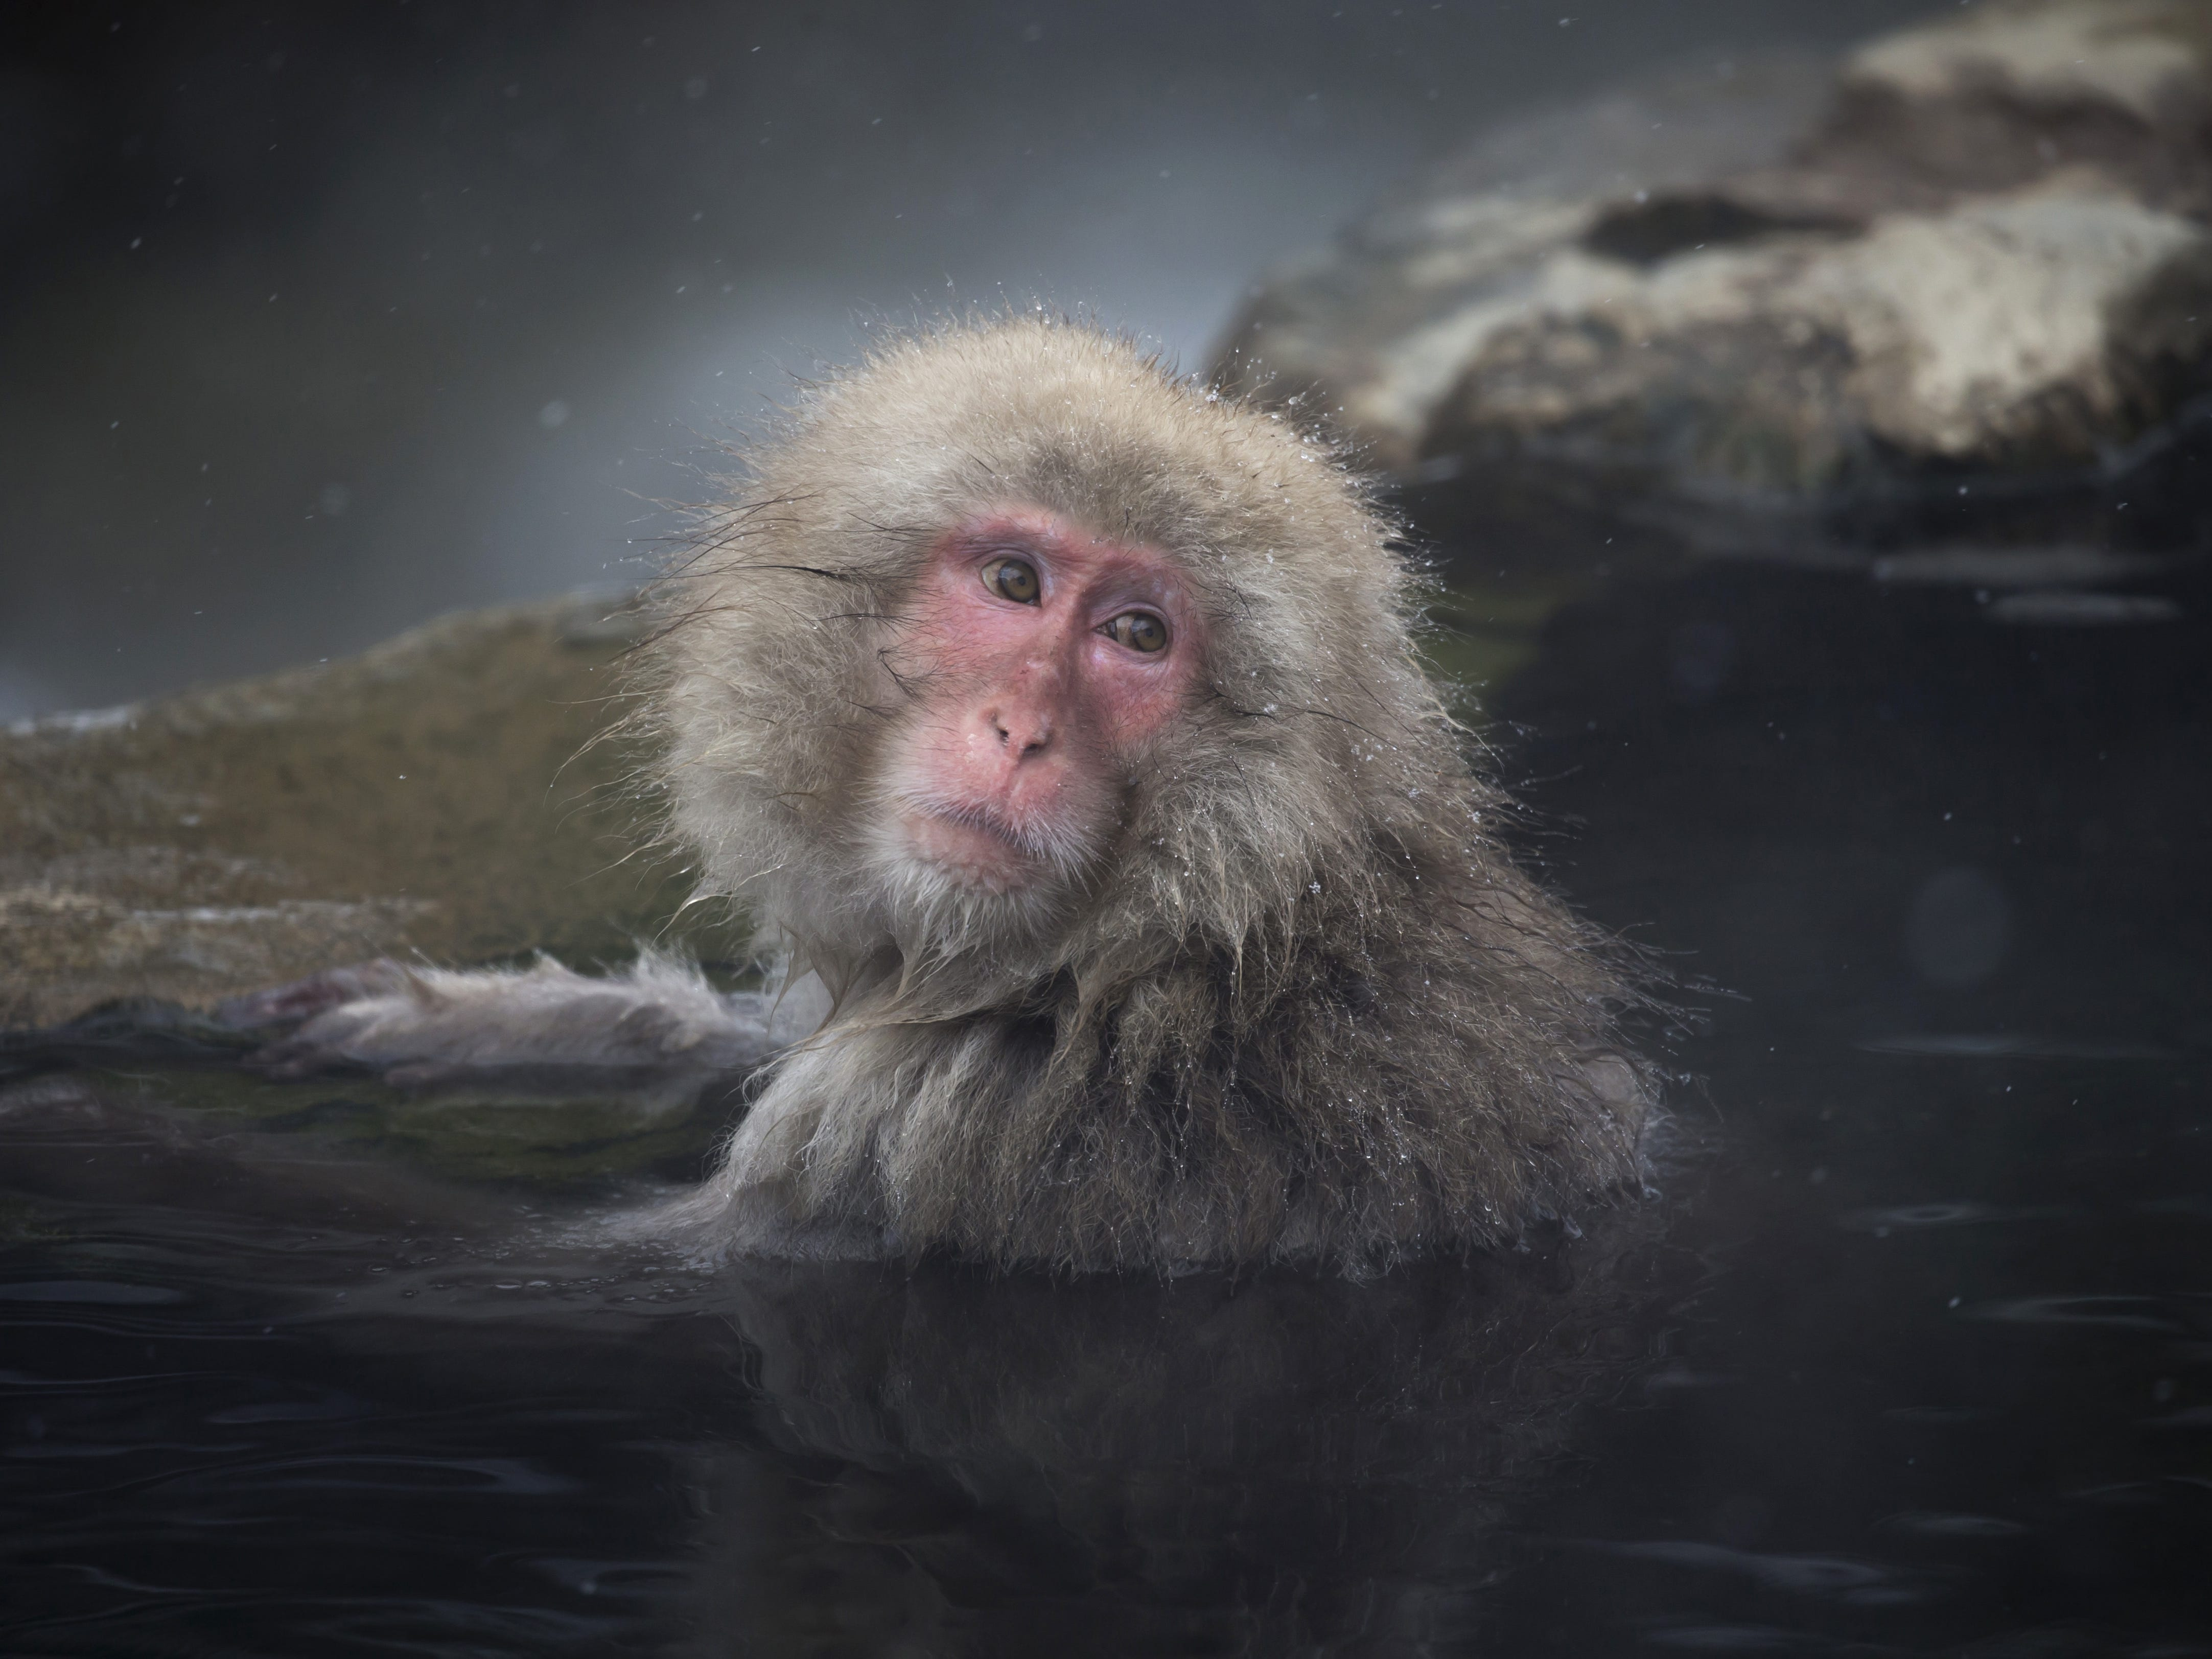 YAMANOUCHI, JAPAN - FEBRUARY 08: A Macaque monkey bathes in a hot spring at the Jigokudani Yaen-koen wild Macaque monkey park on February 8, 2019 in Yamanouchi, Japan. The wild Japanese macaques are known as snow monkeys, according to the park's official website. (Photo by Tomohiro Ohsumi/Getty Images) ORG XMIT: 775292339 ORIG FILE ID: 1128216197